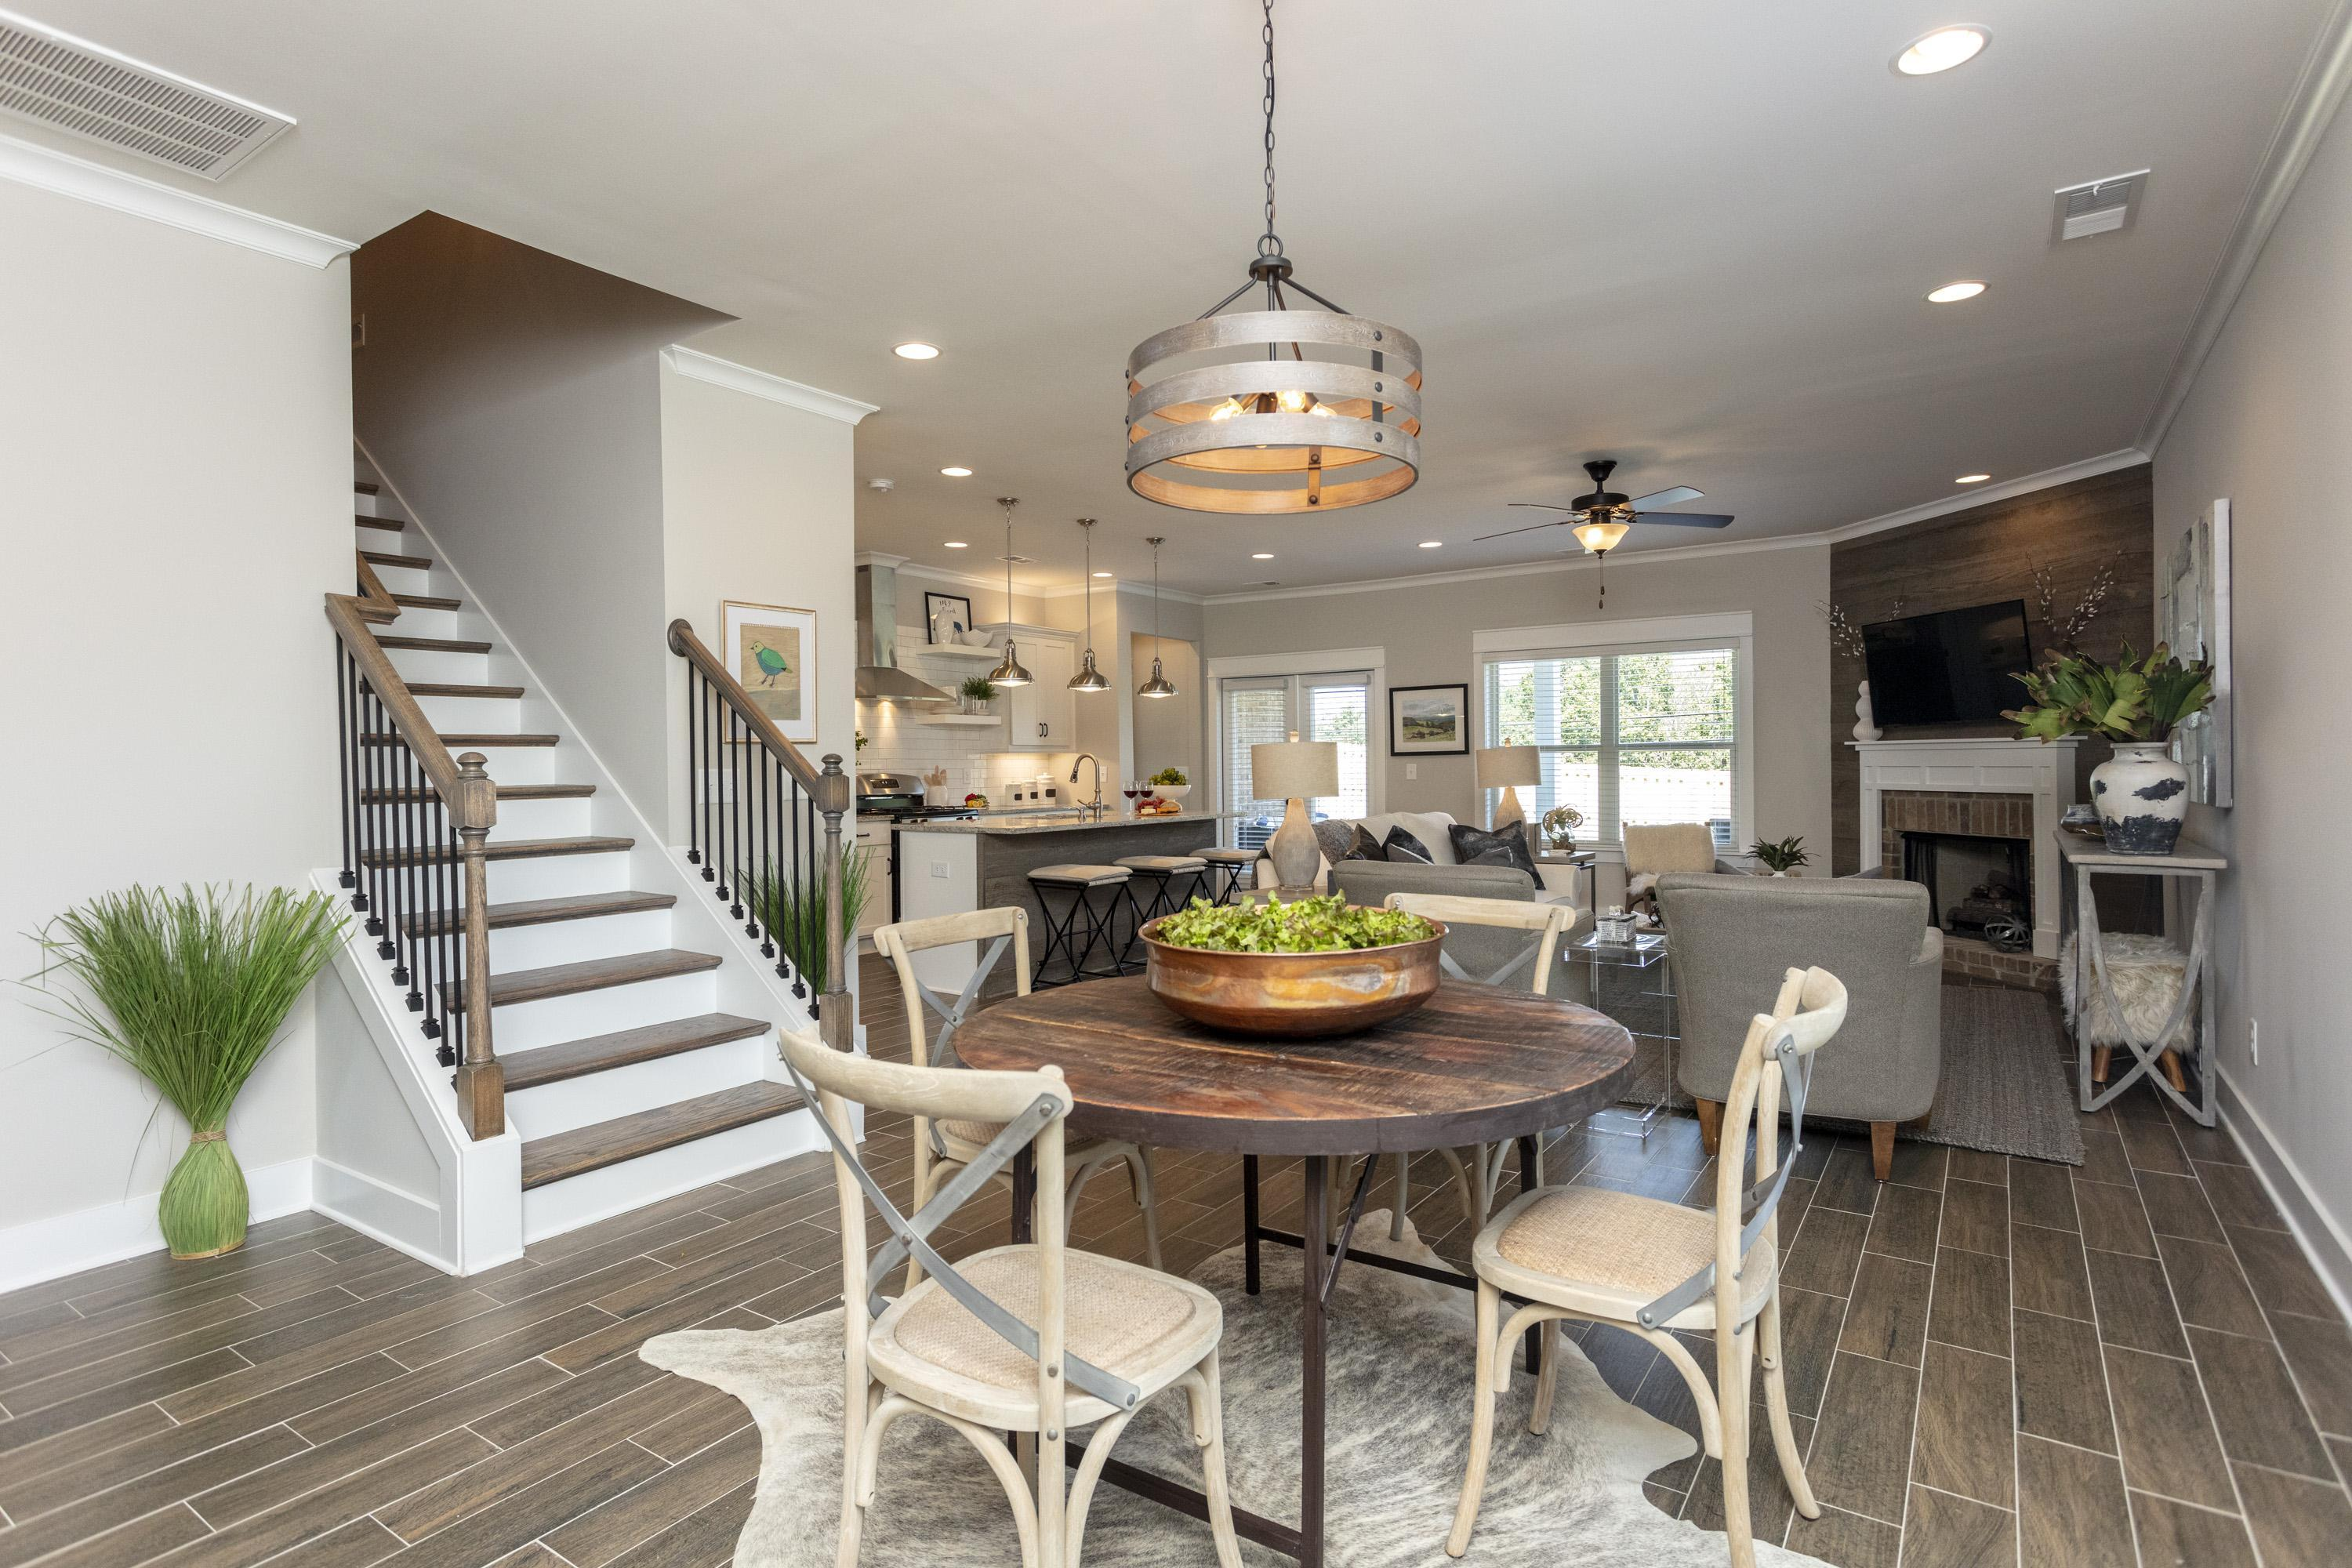 Kitchen featured in the Hamilton II A By Tower Homes in Birmingham, AL